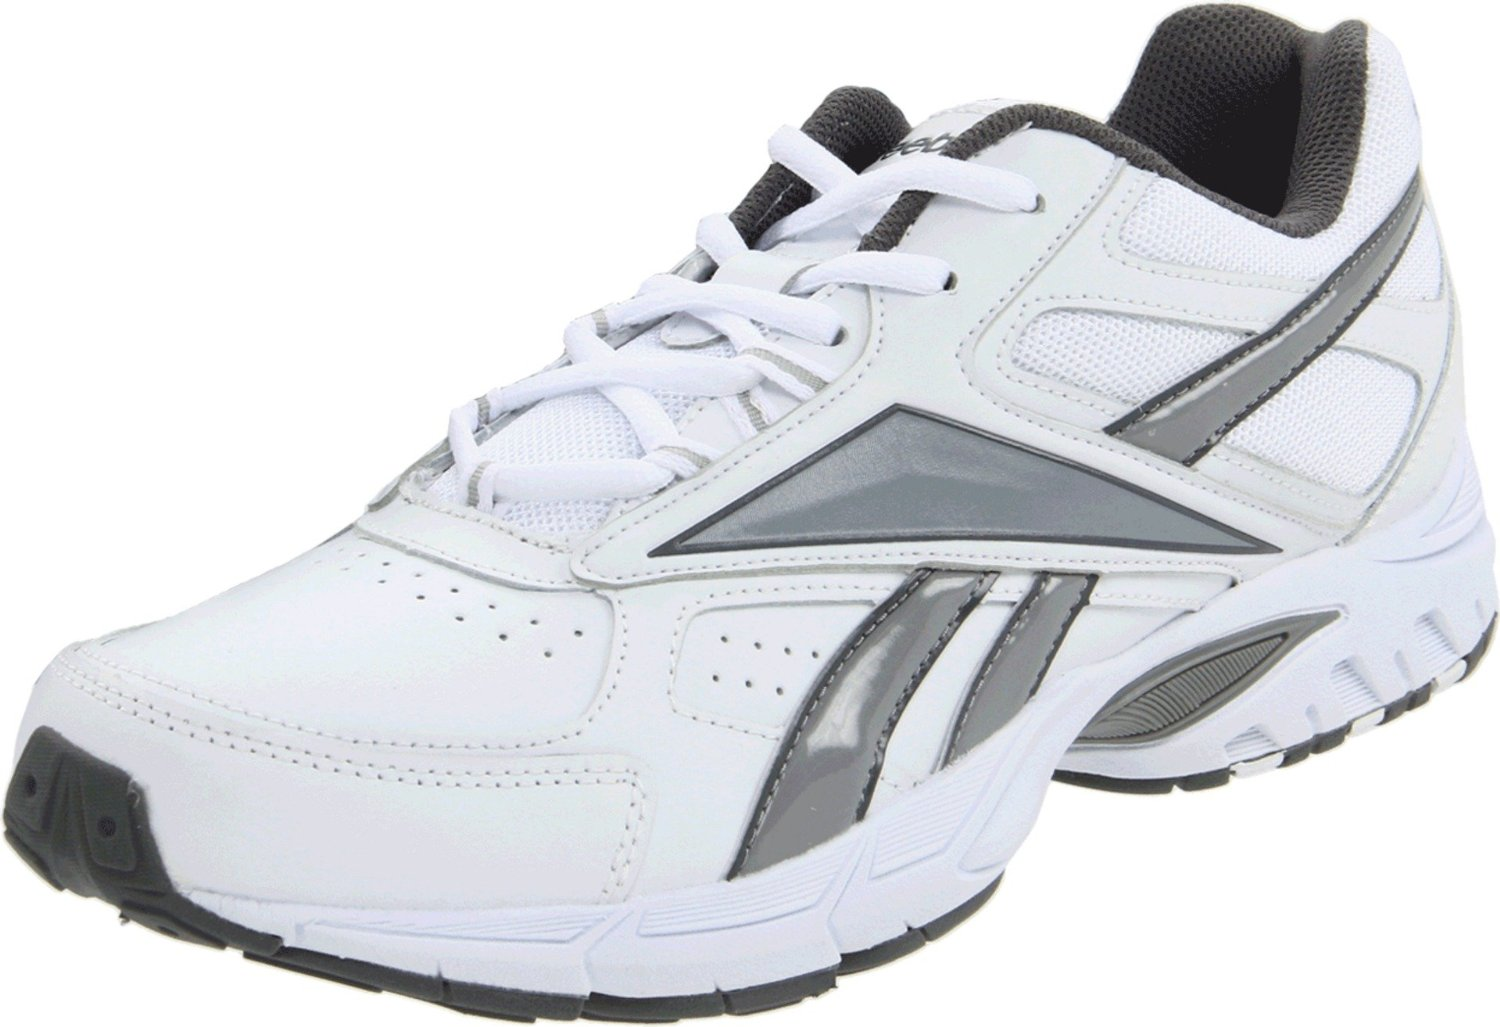 Reebok Infrastructure Mens Training Shoes